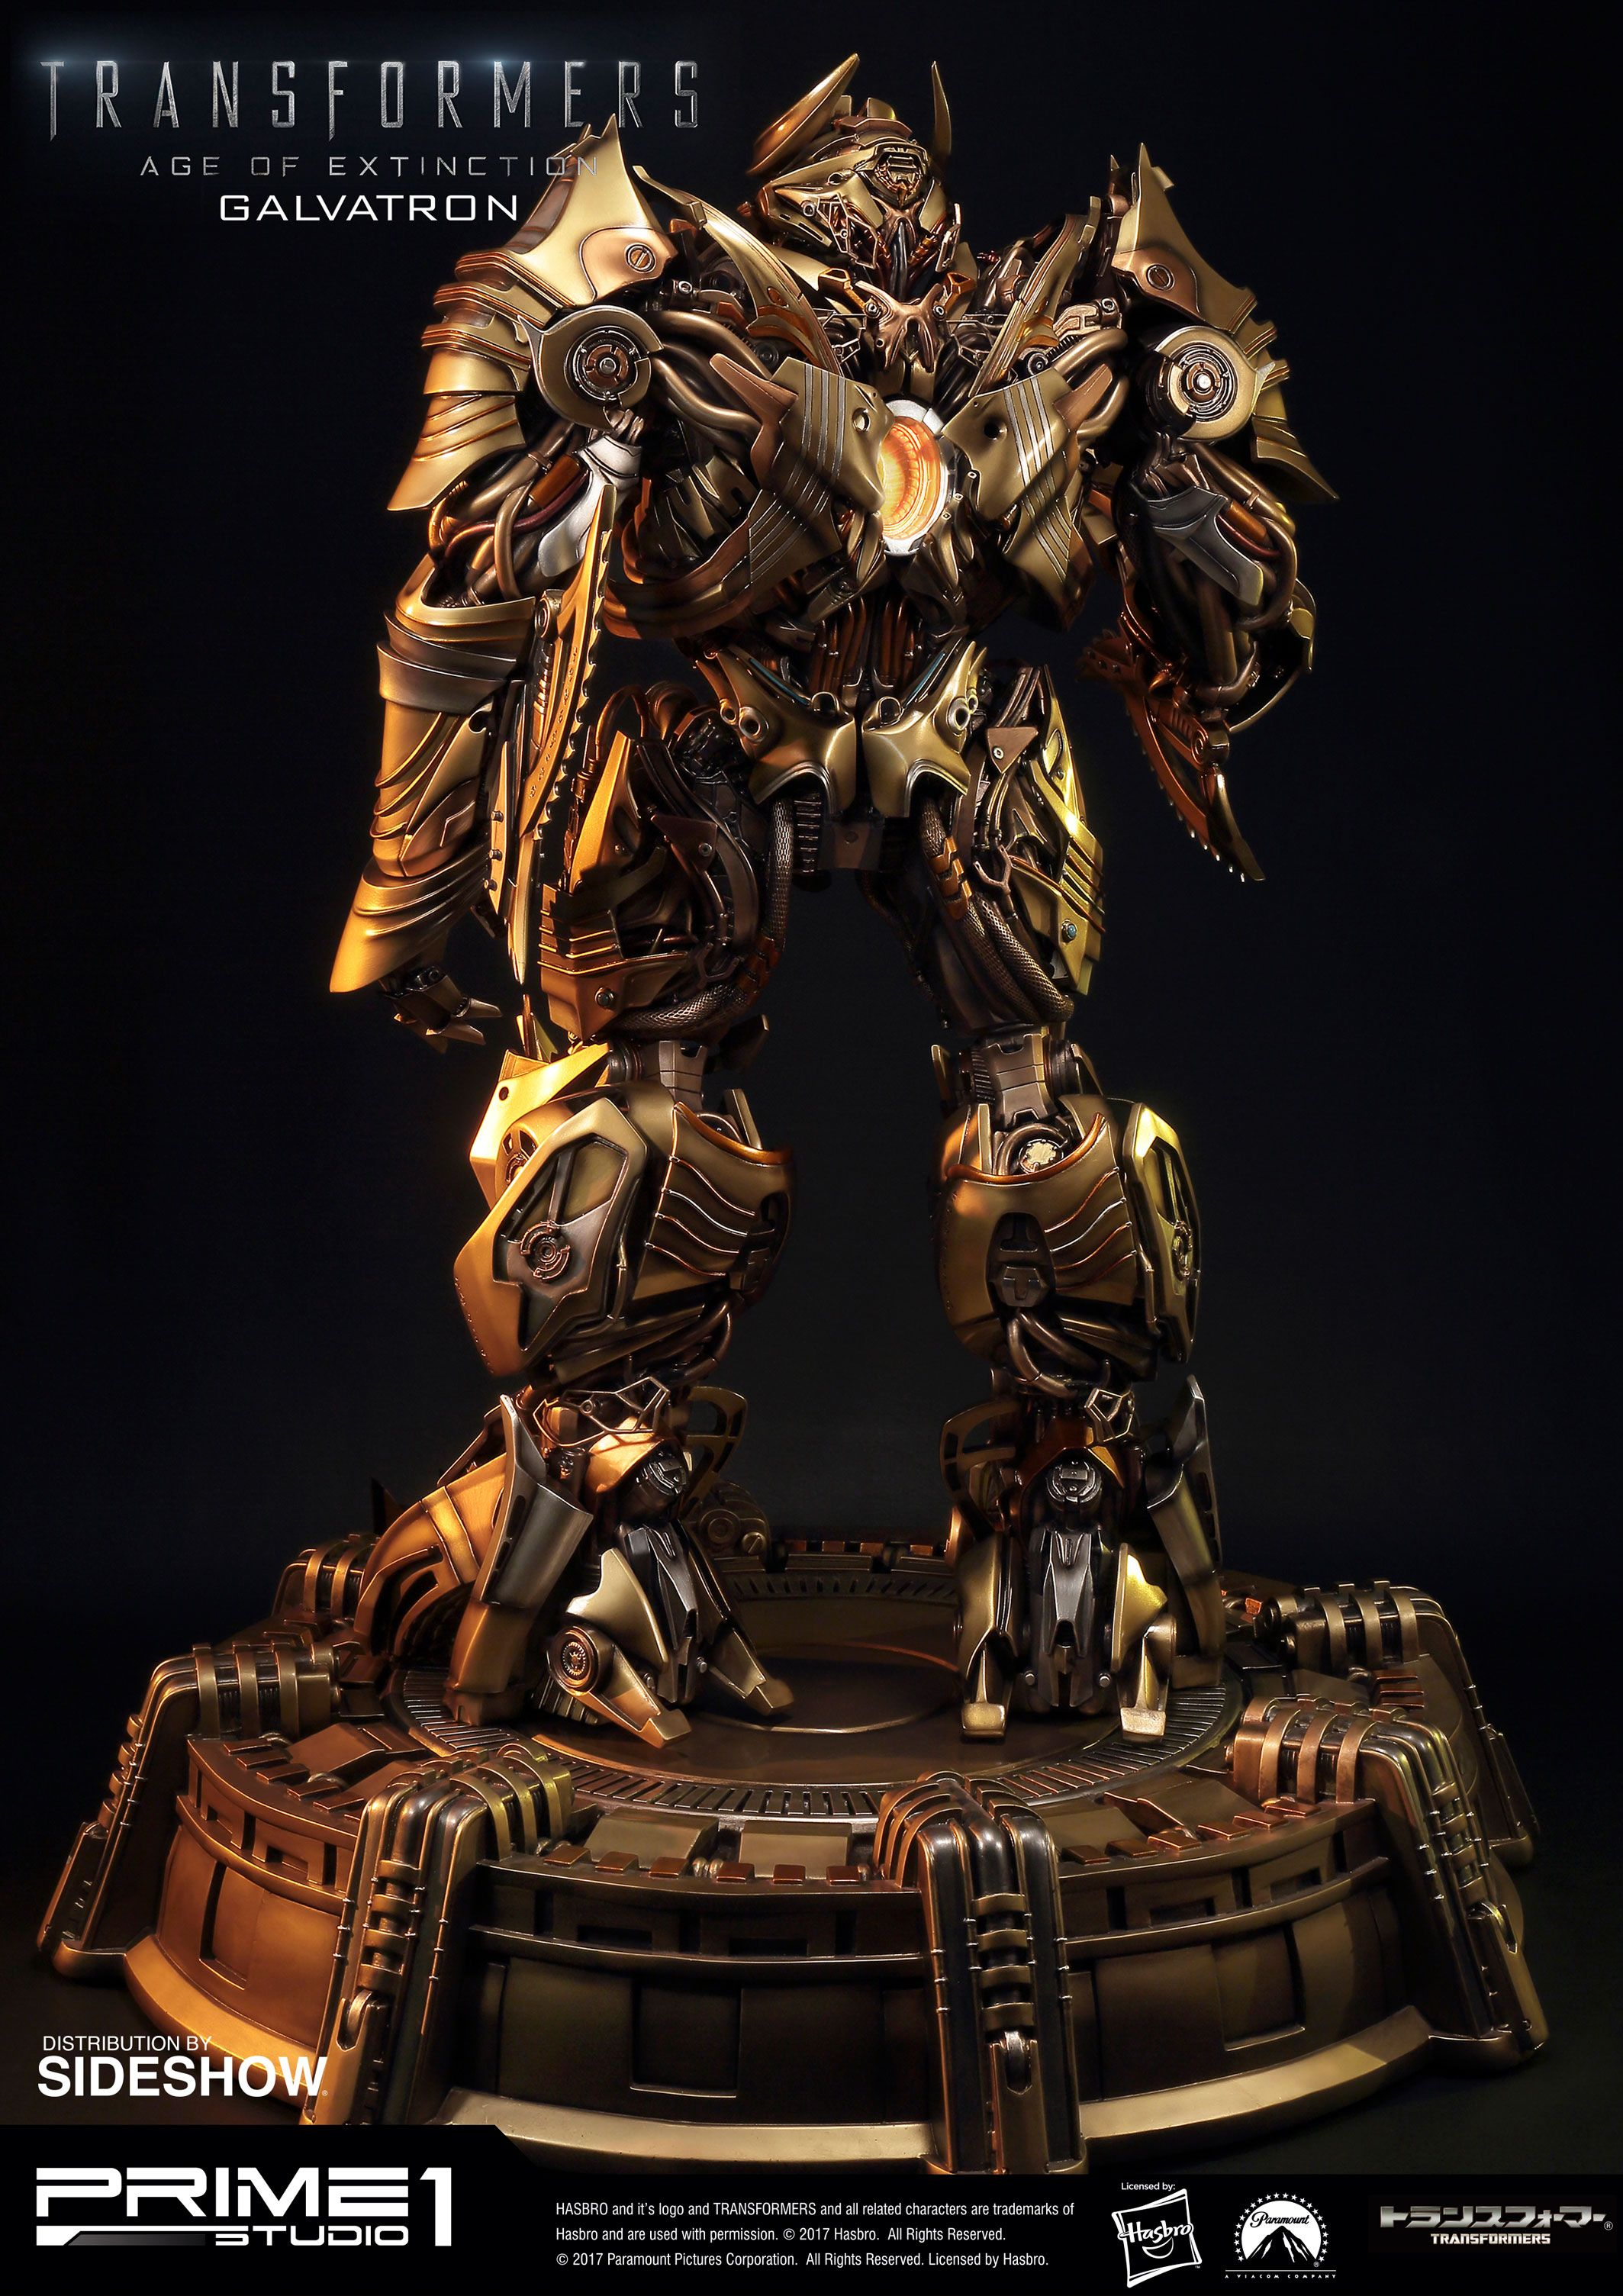 Transformers Galvatron Gold Version Statue by Prime 1